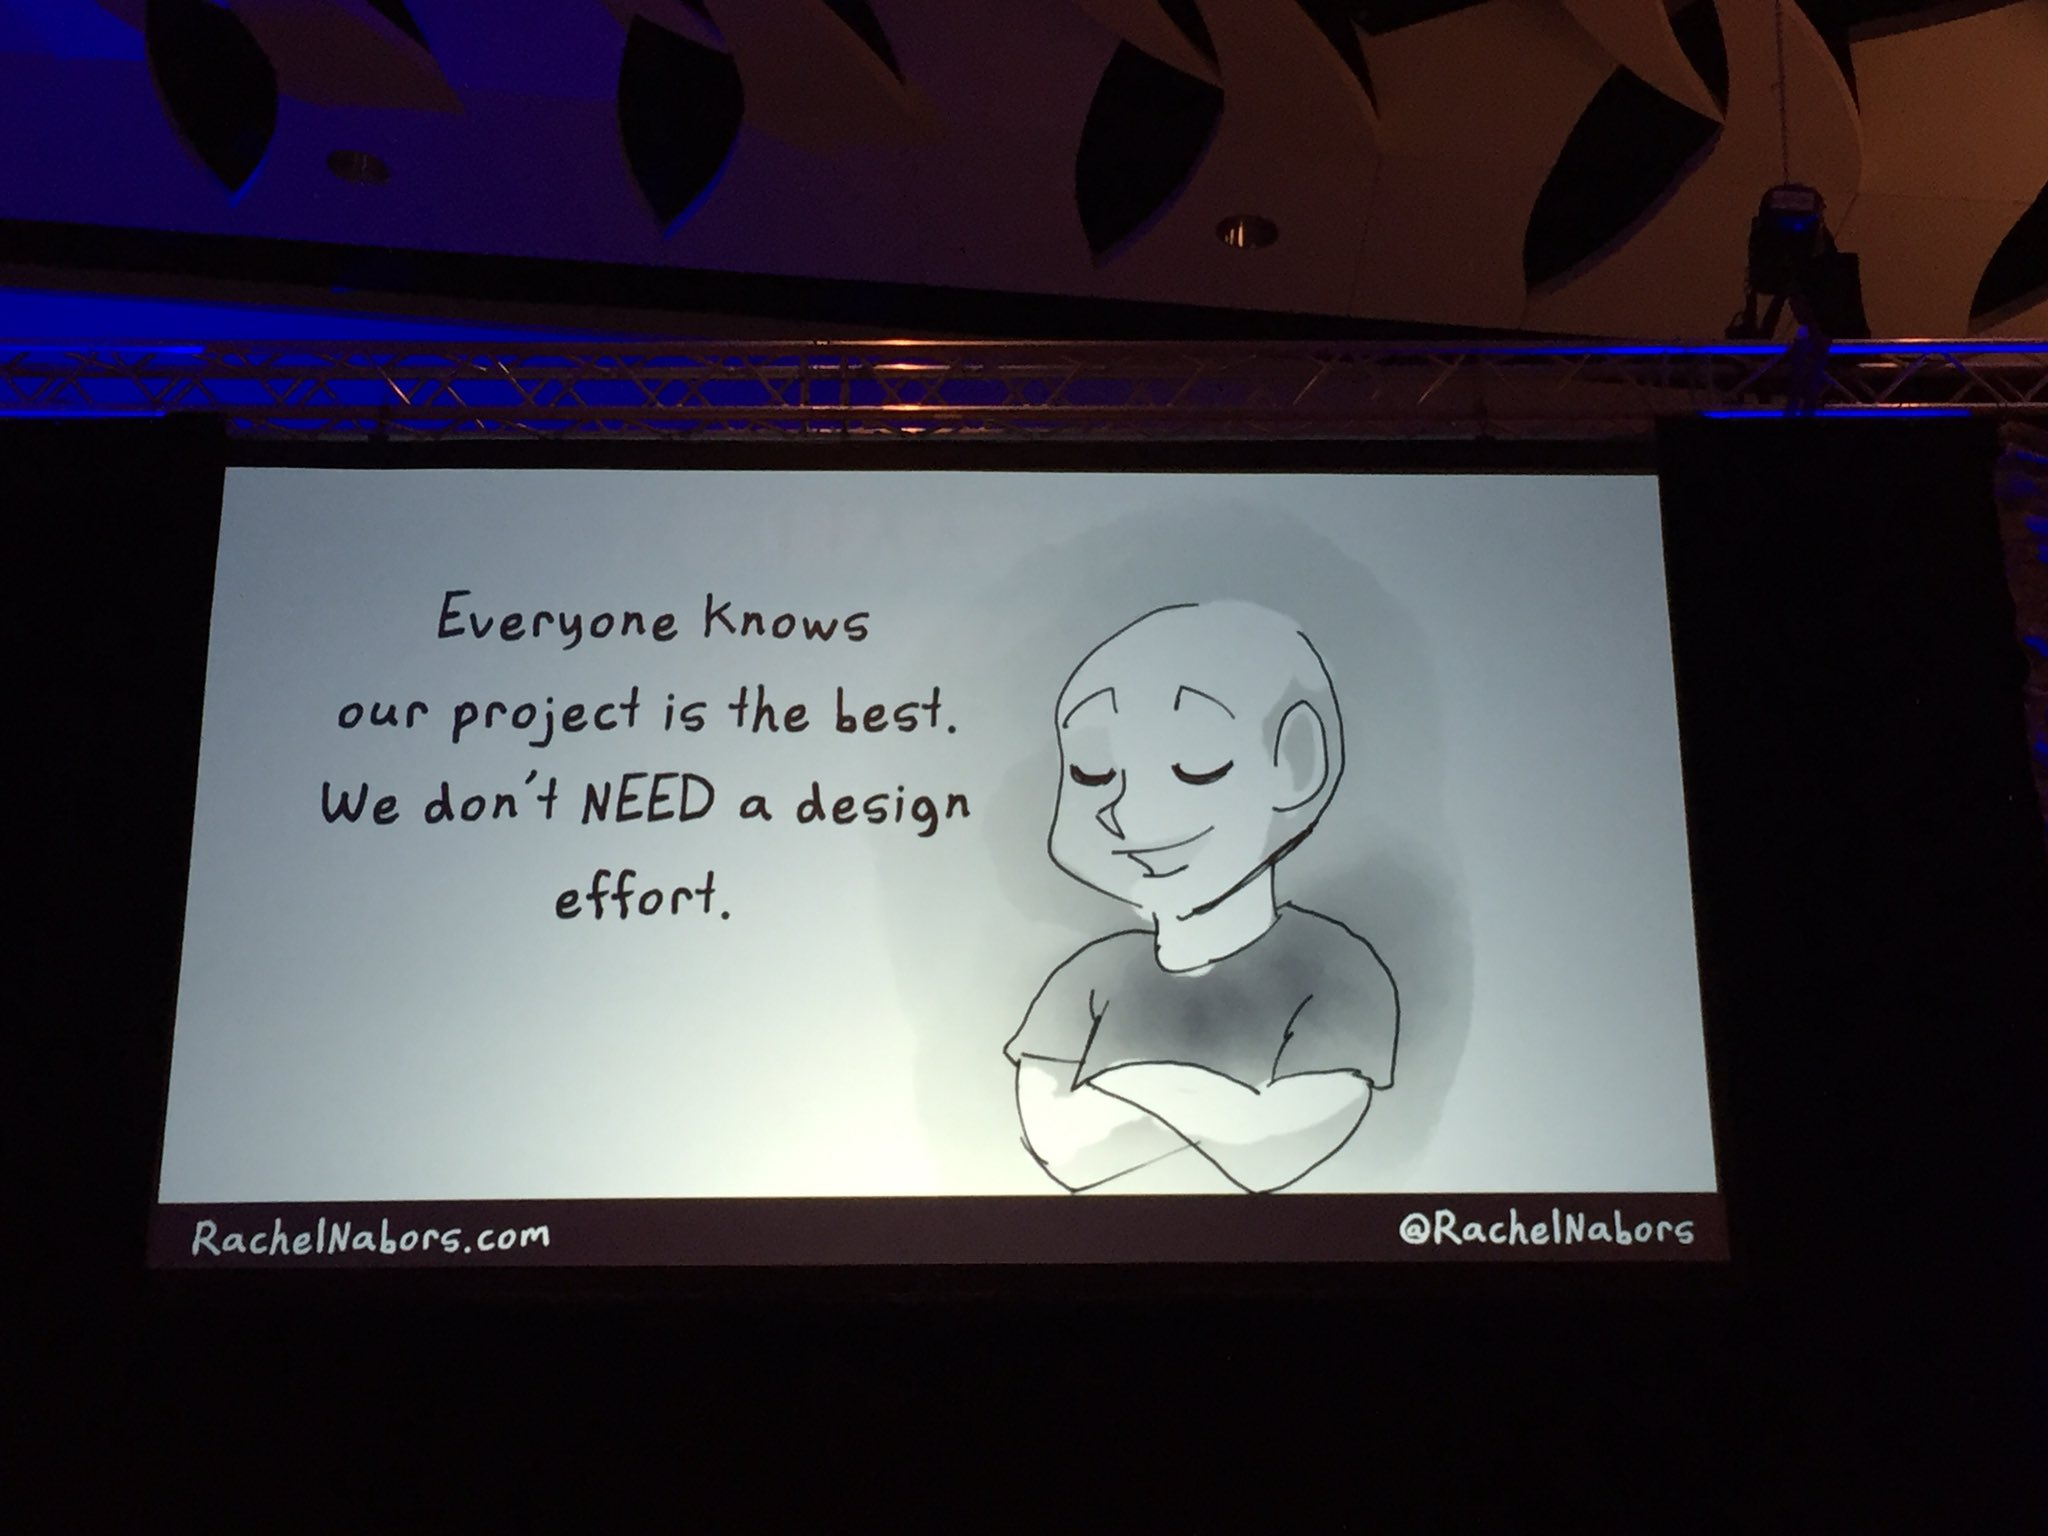 Yes, your #opensource project needs Design! Fun hand-drawn slides by @rachelnabors #ATO2016 https://t.co/hddlZZyZh7